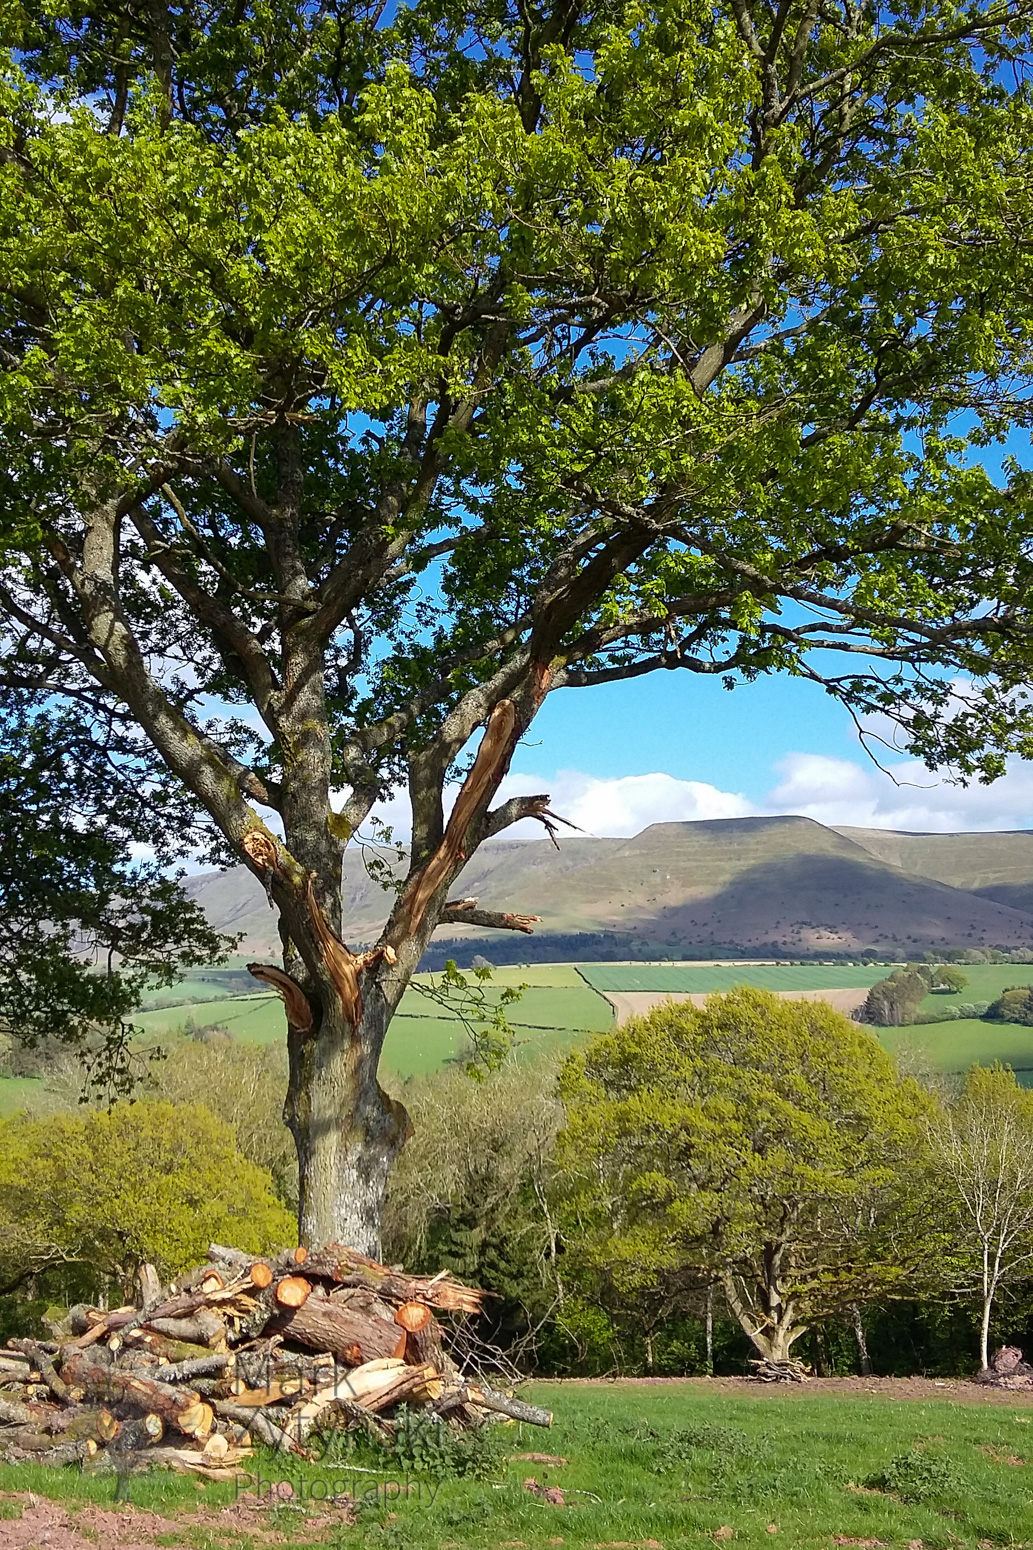 Bluebells, Oaks and Mountains #3